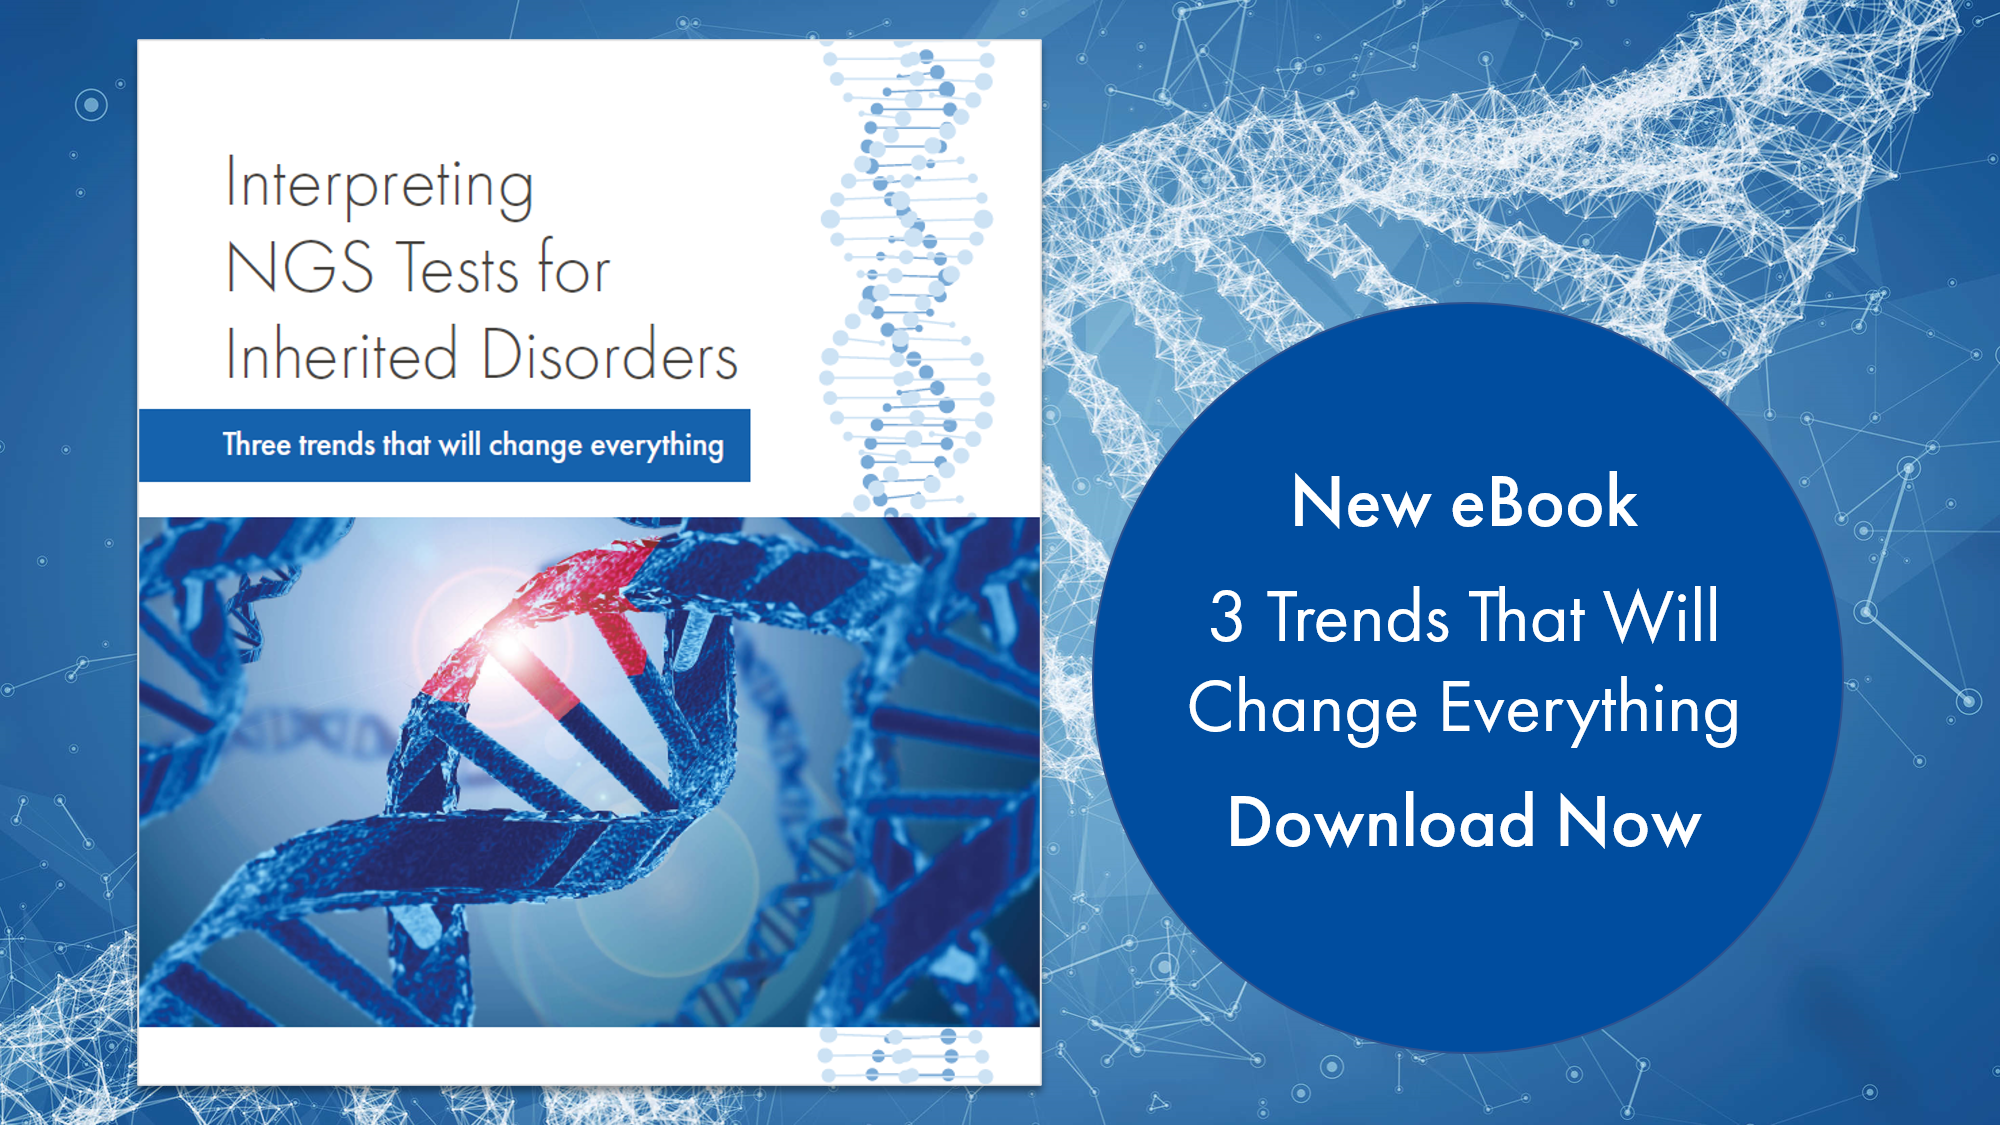 New eBook! Interpreting NGS Tests for Inherited Disorders: 3 trends that will change everything